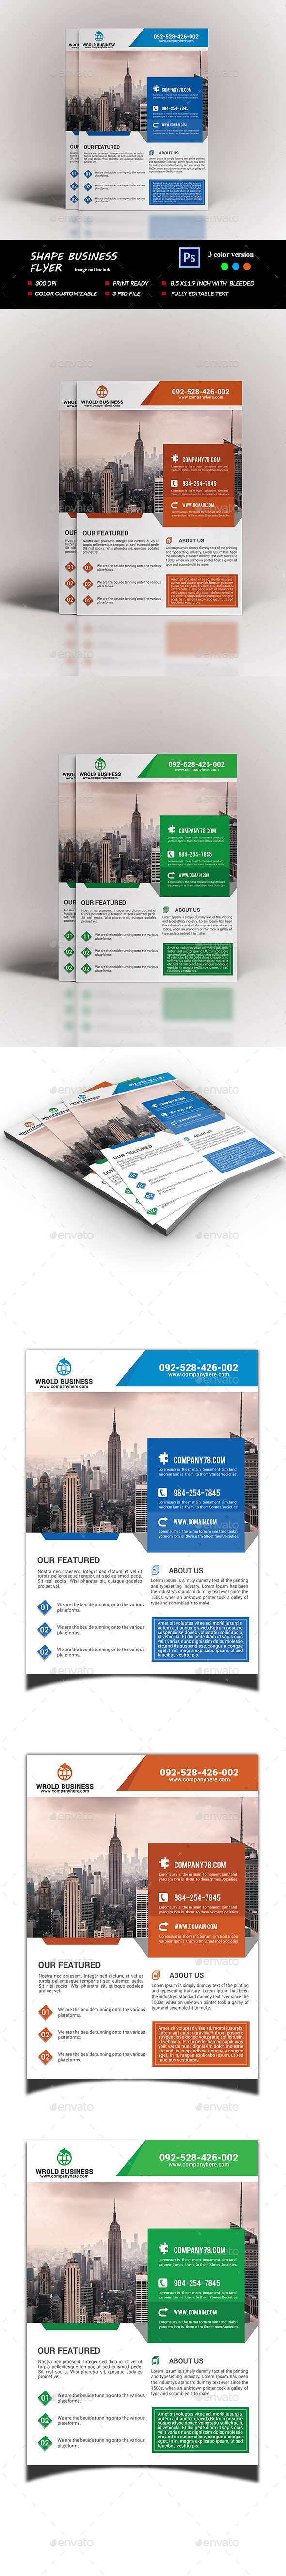 Shape Business Flyer - Corporate Flyers